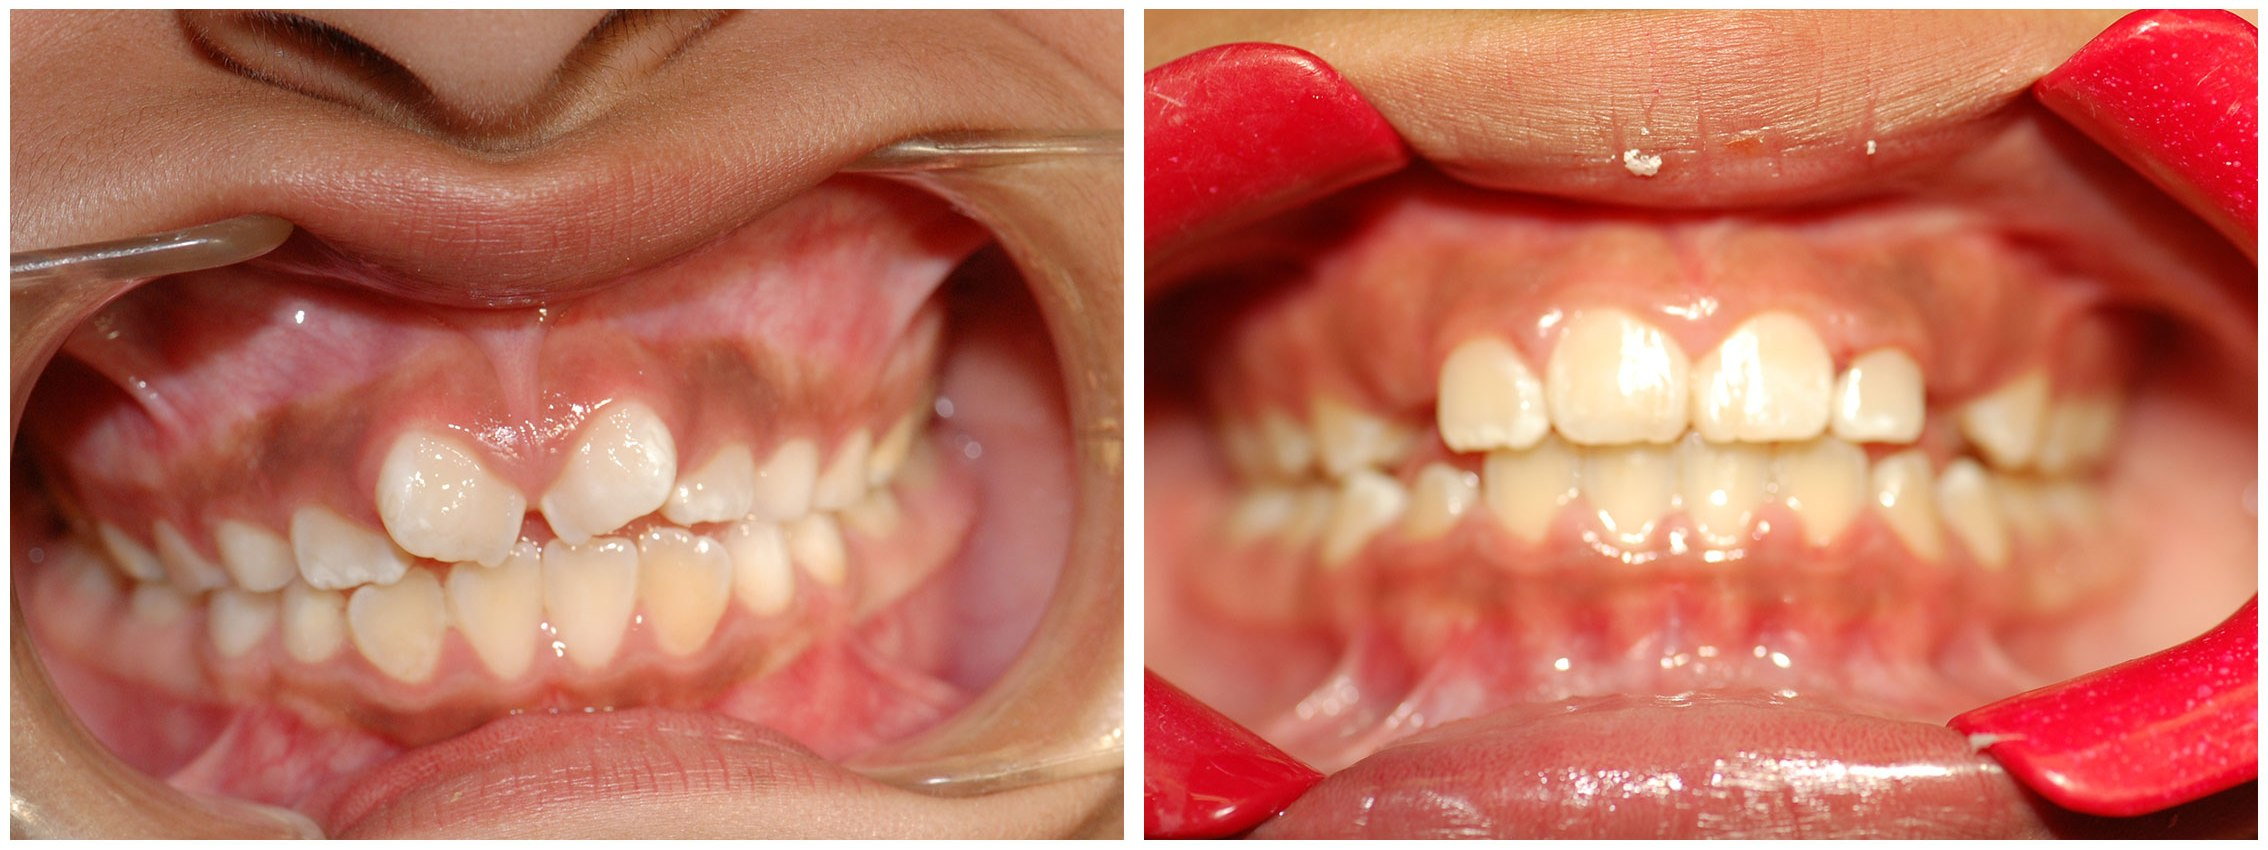 Orthodontist Dental Braces Treatment Before & After